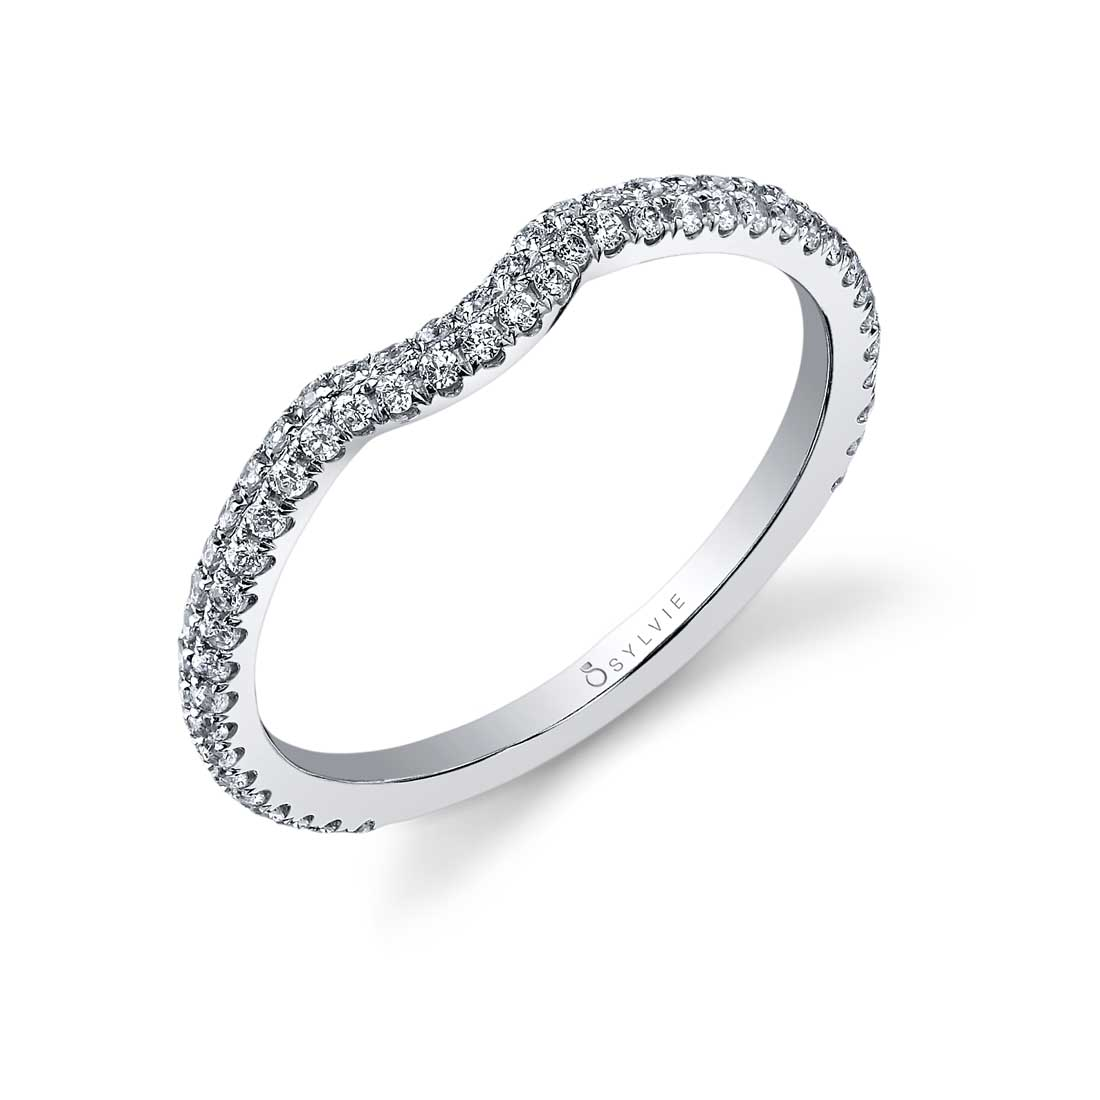 Profile Image of an Oval Shaped East West Halo Engagement Ring